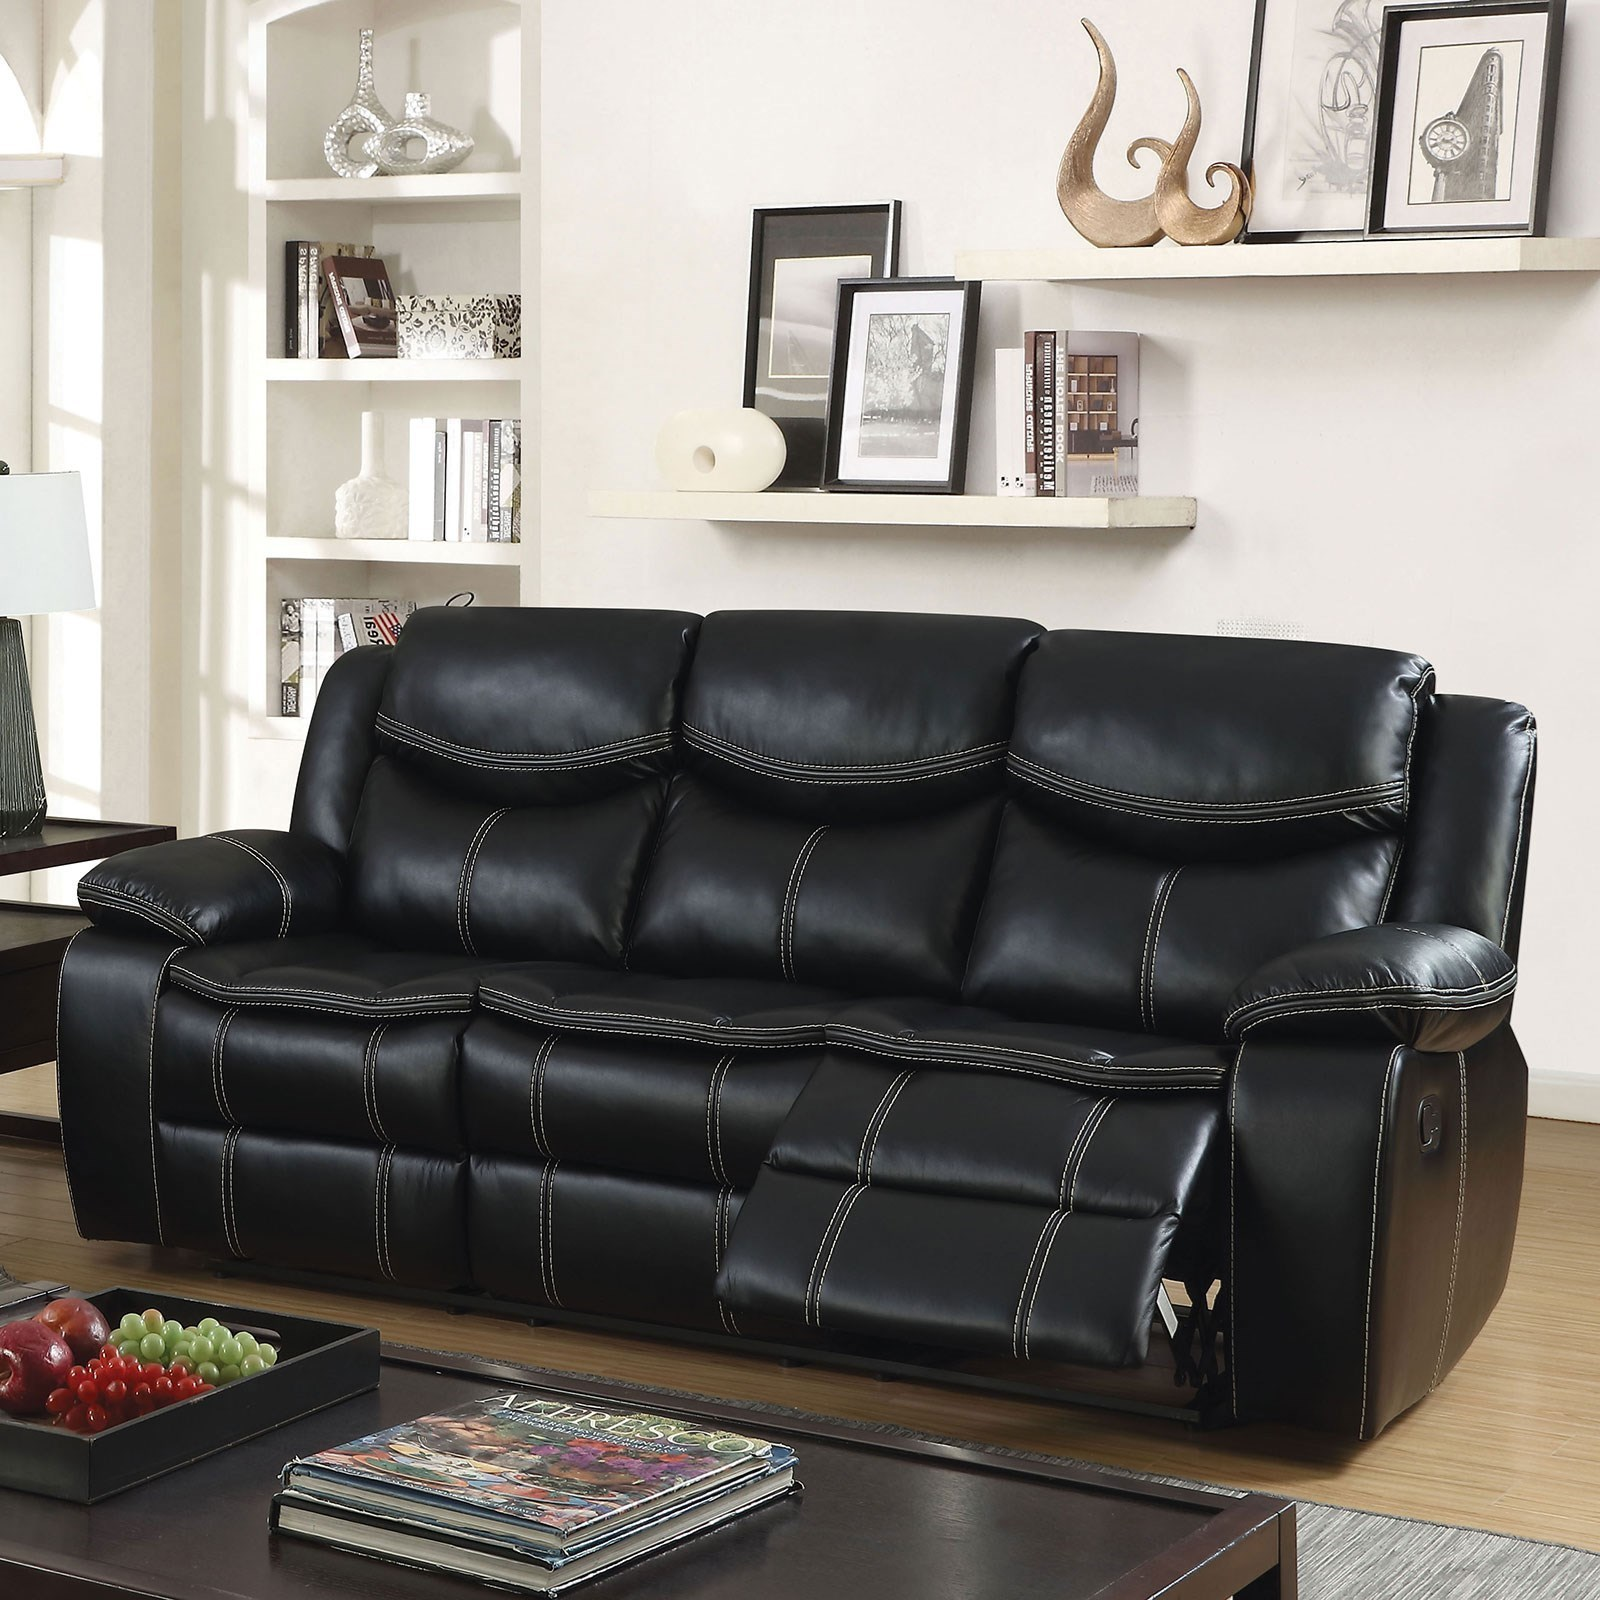 Home Furniture For Less: Furniture Of America Gatria Casual Faux Leather Reclining